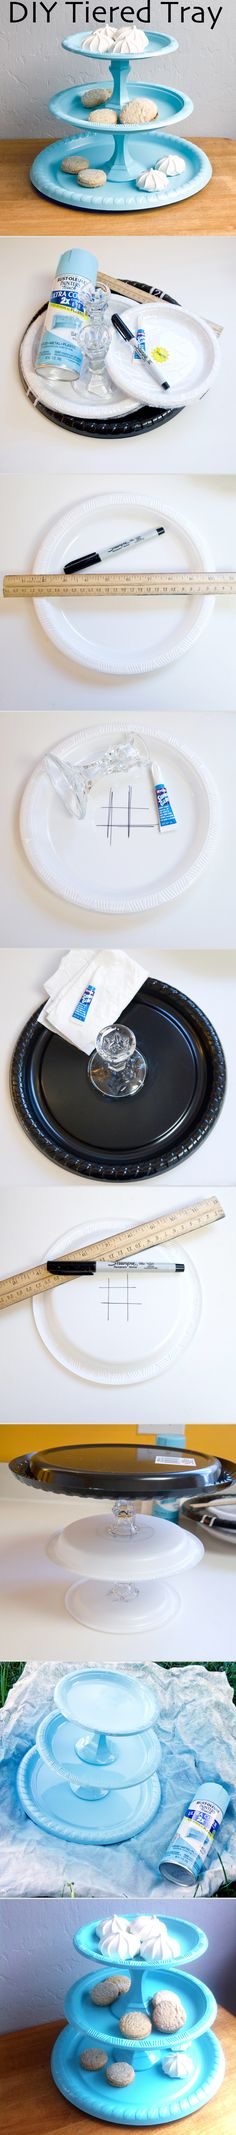 This chic tray comes together with just a few plastic plates, a bit of glue, and a few dollar-store finds.